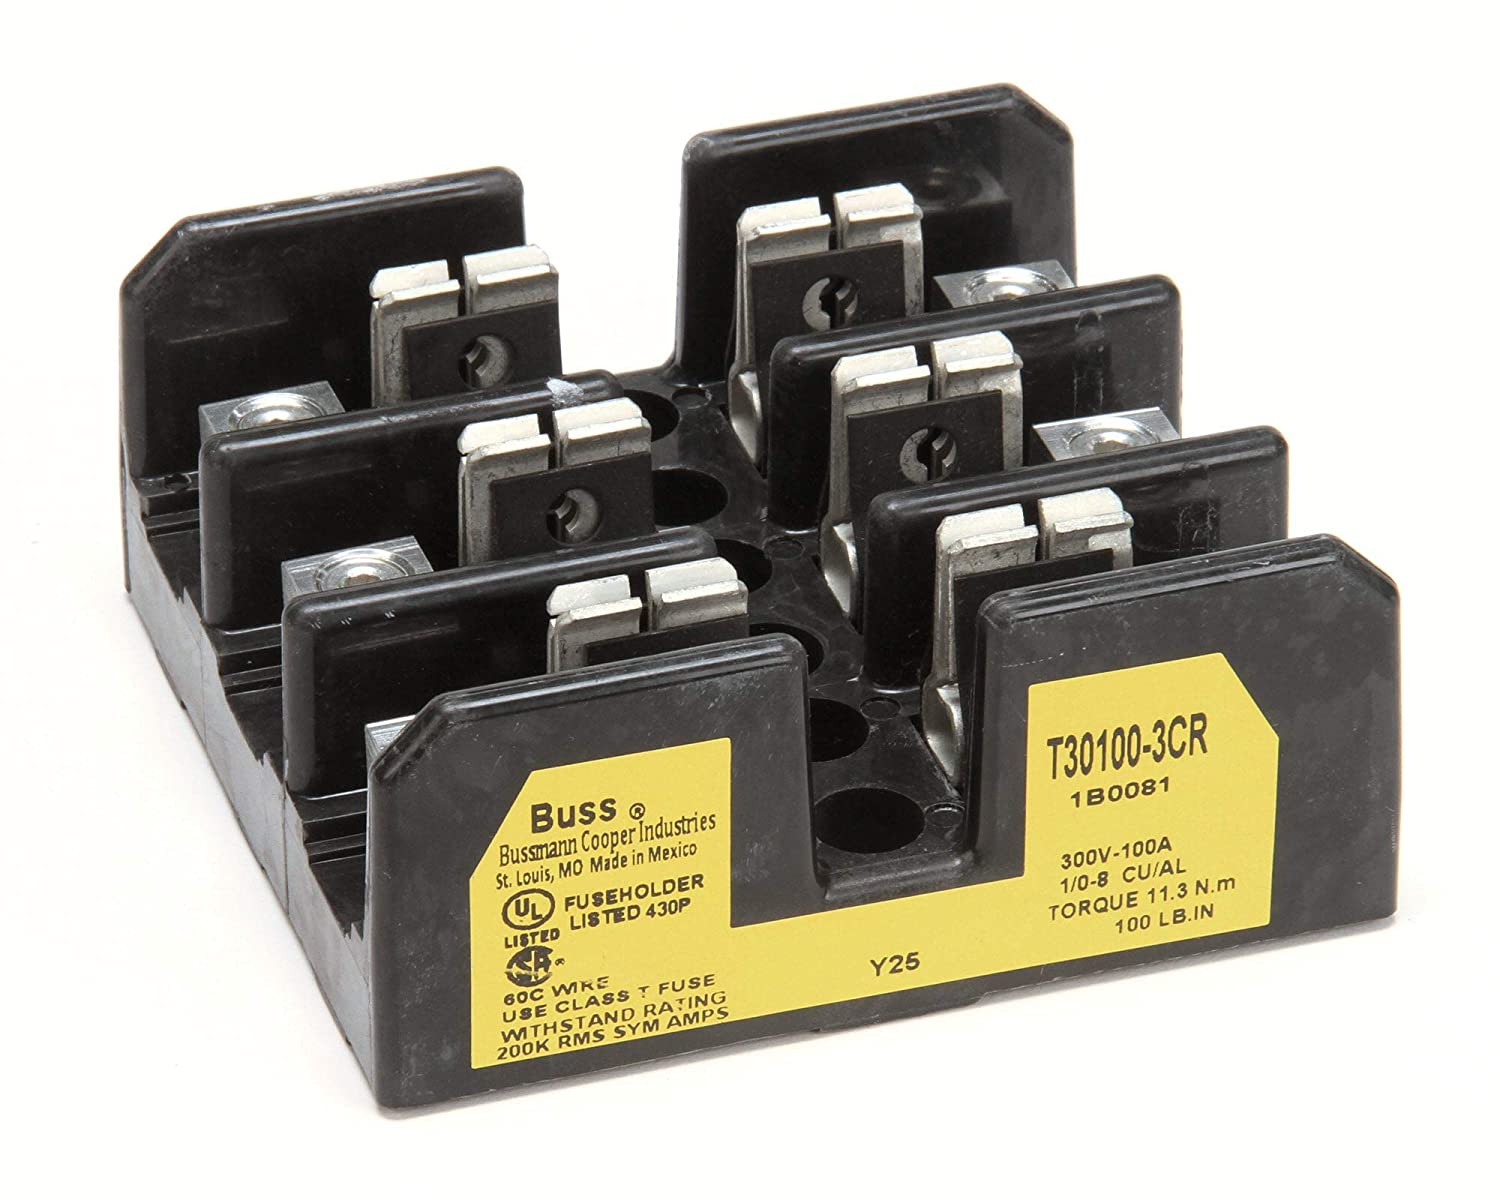 Champion - Moyer Diebel 108424 Fuse Block 600V/100A 3P T Type 711WeweeggL._SL1500_